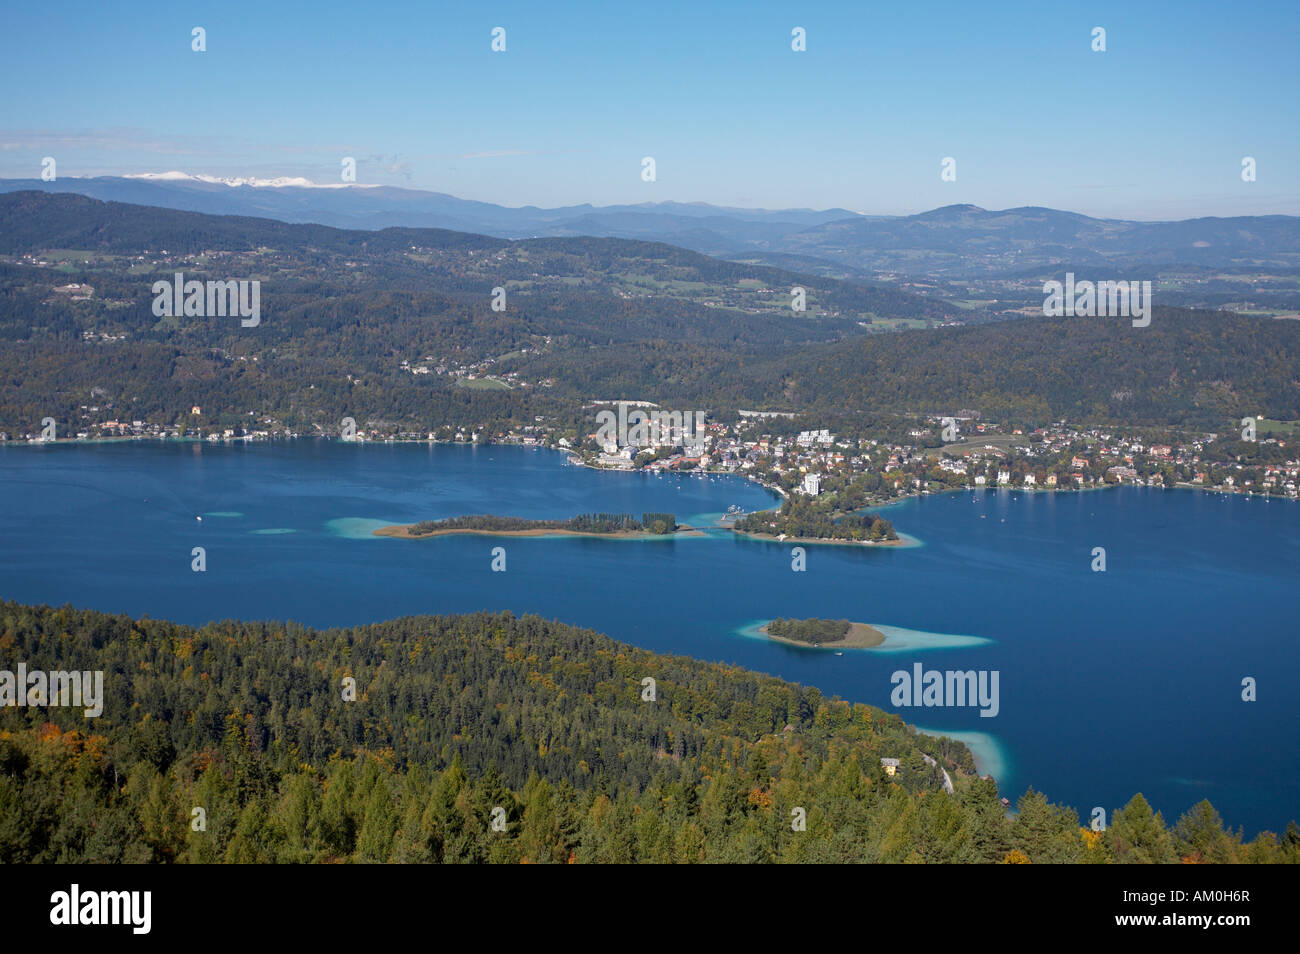 View from Pyramidenkogel to Woerthersee lake and Poertschach, Carinthia, Austria Stock Photo